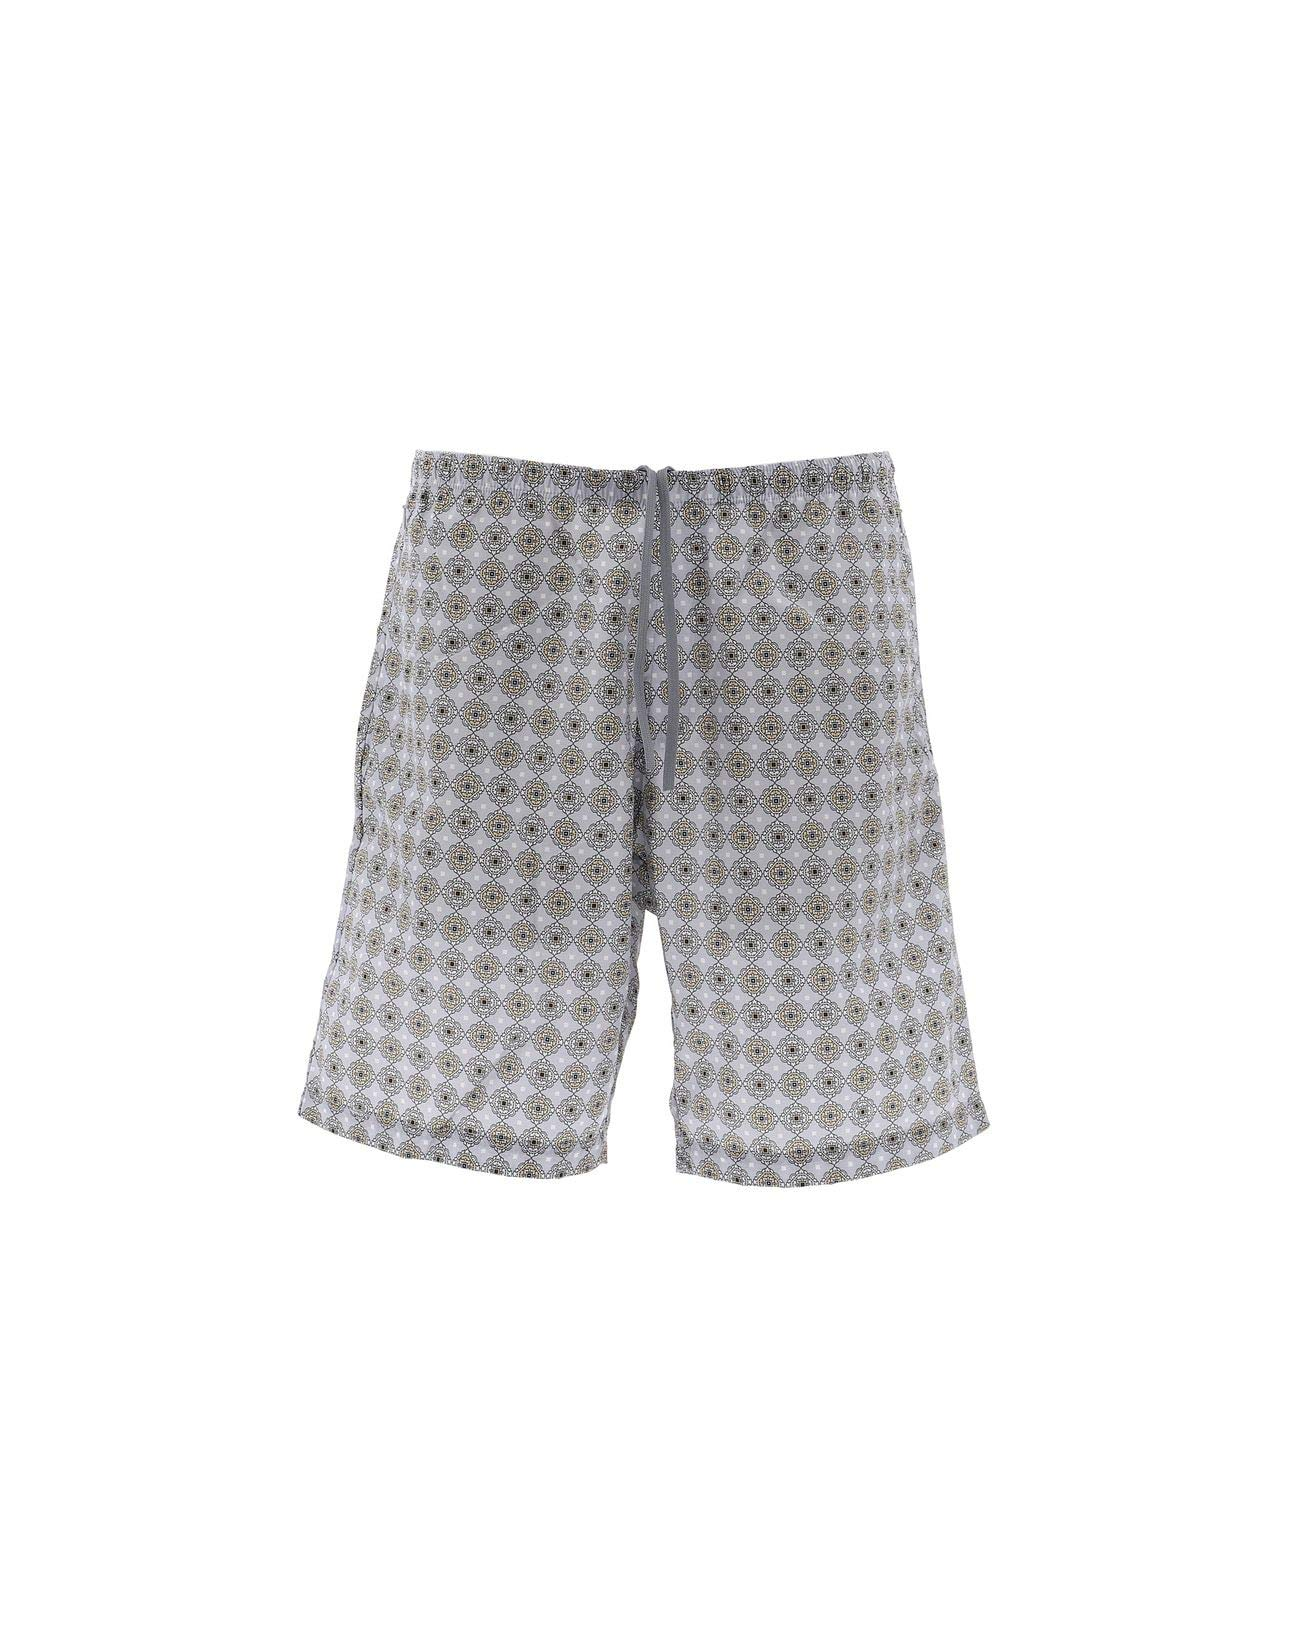 NEEDLES Men's Ej059bltgry Grey Nylon Trunks by NEEDLES (Image #1)